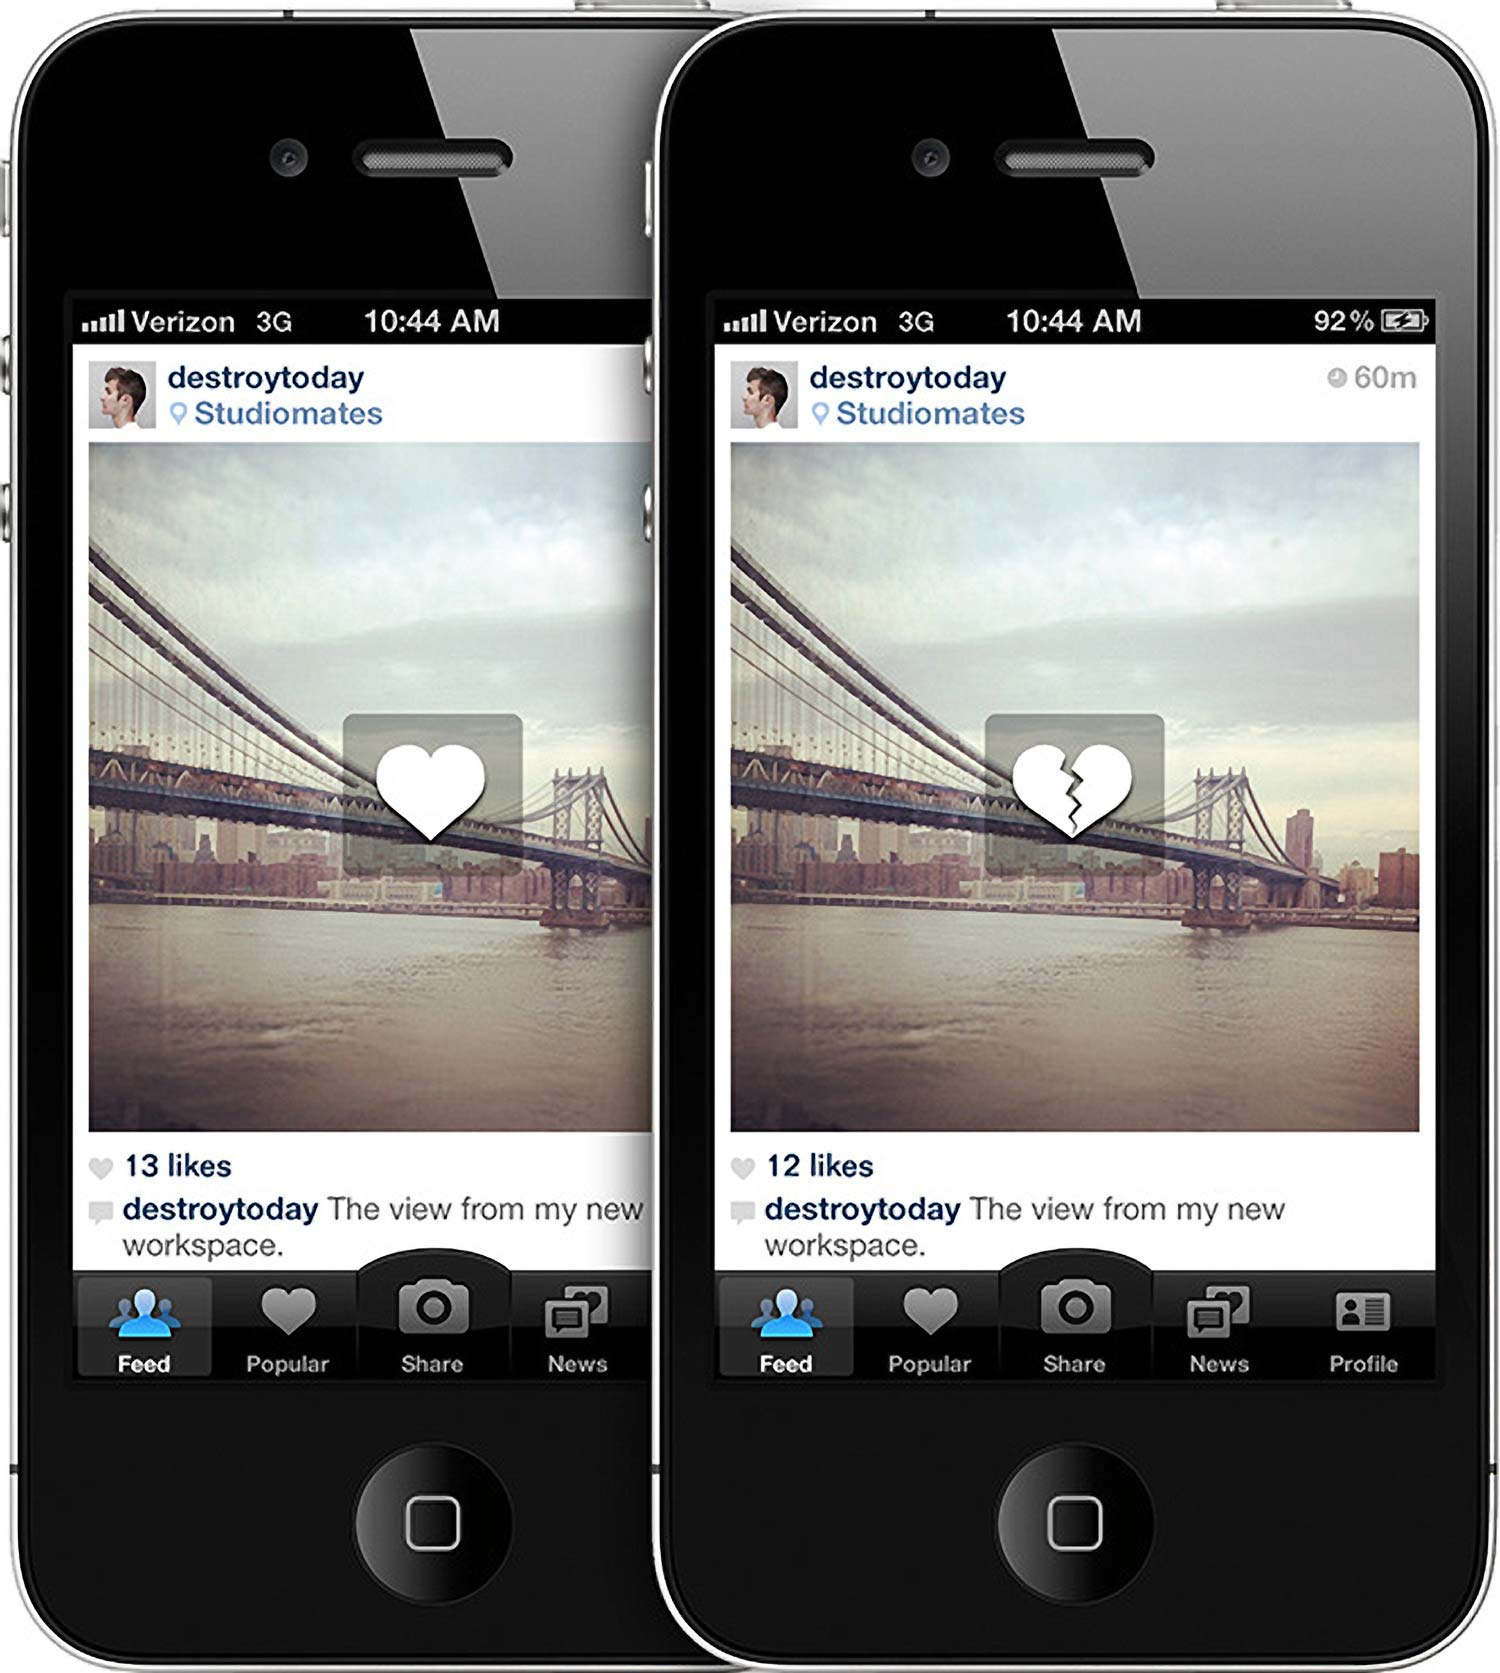 ux-i-want-unliking-in-instagram